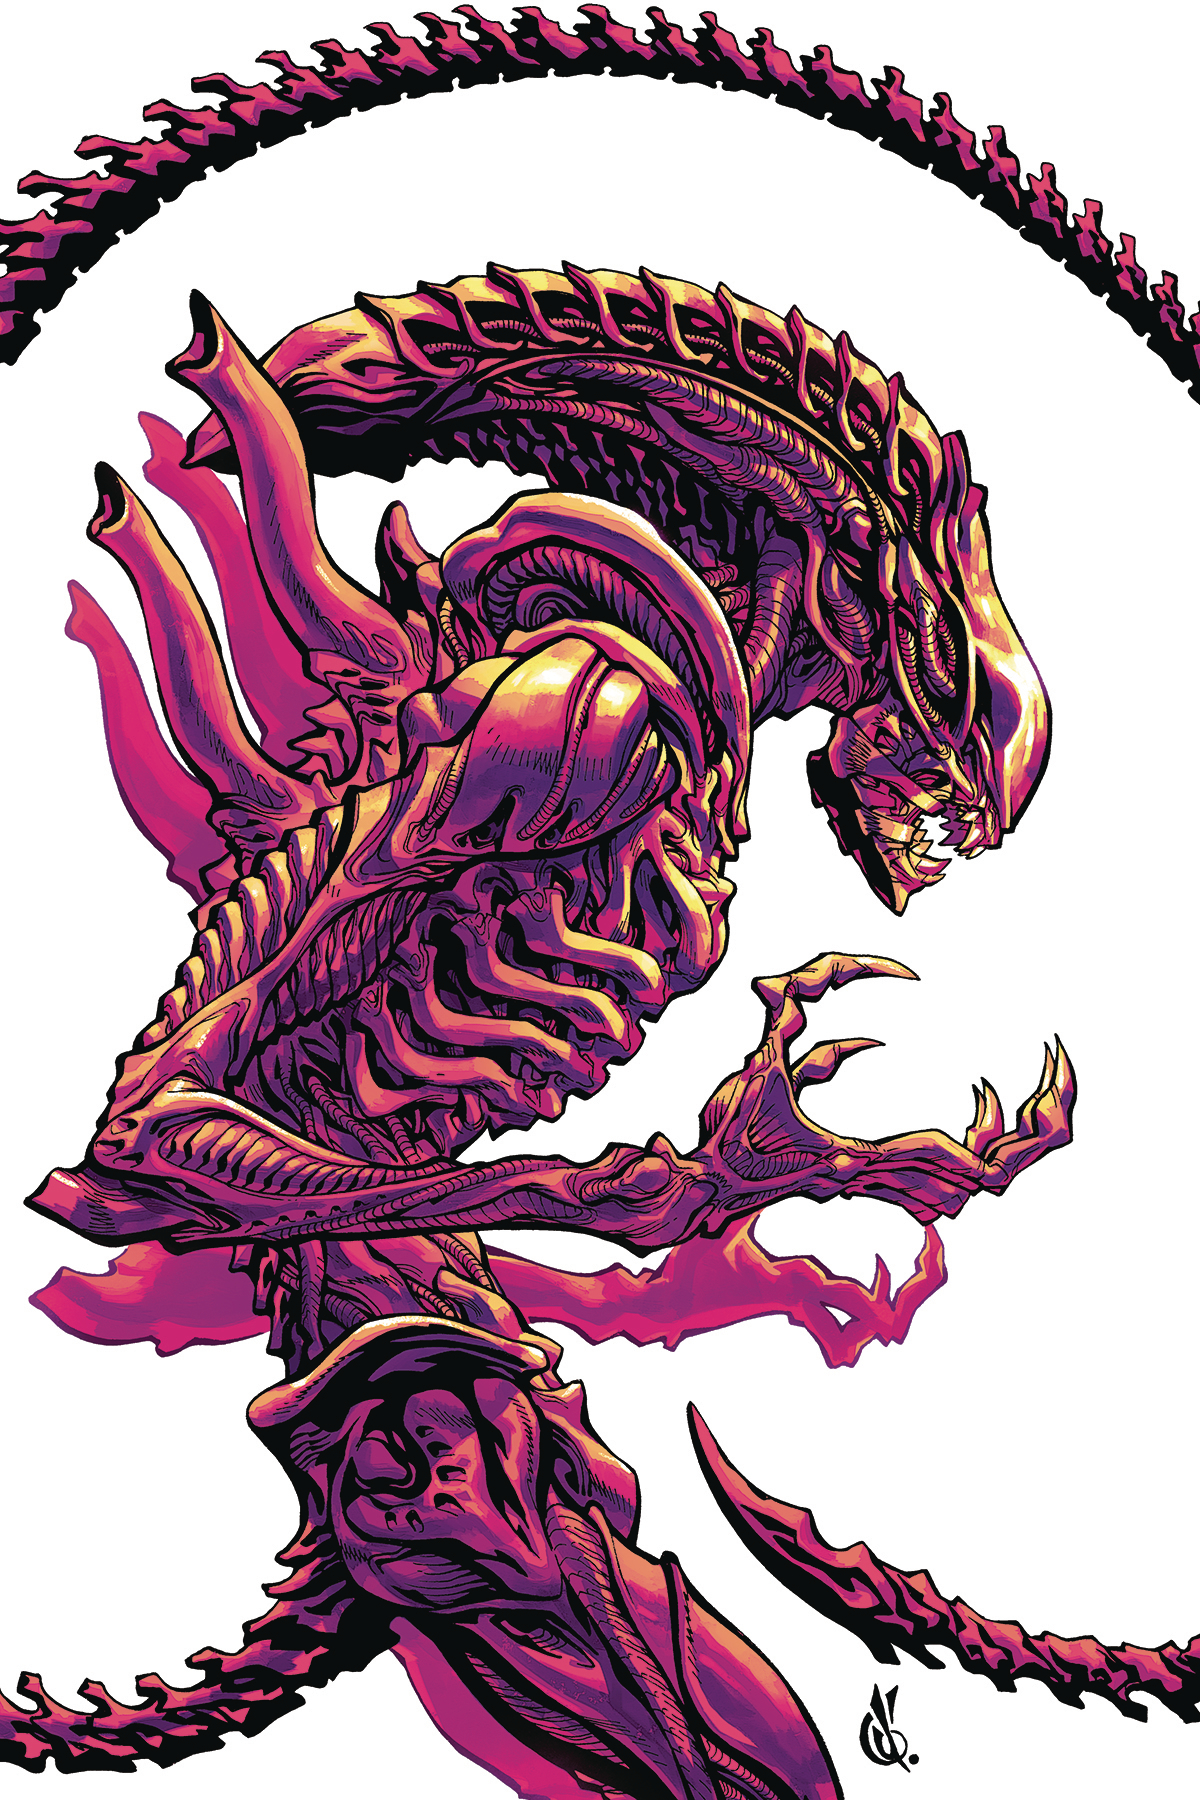 ALIENS DUST TO DUST #2 (OF 4) VAR D ANDA CVR (MR)